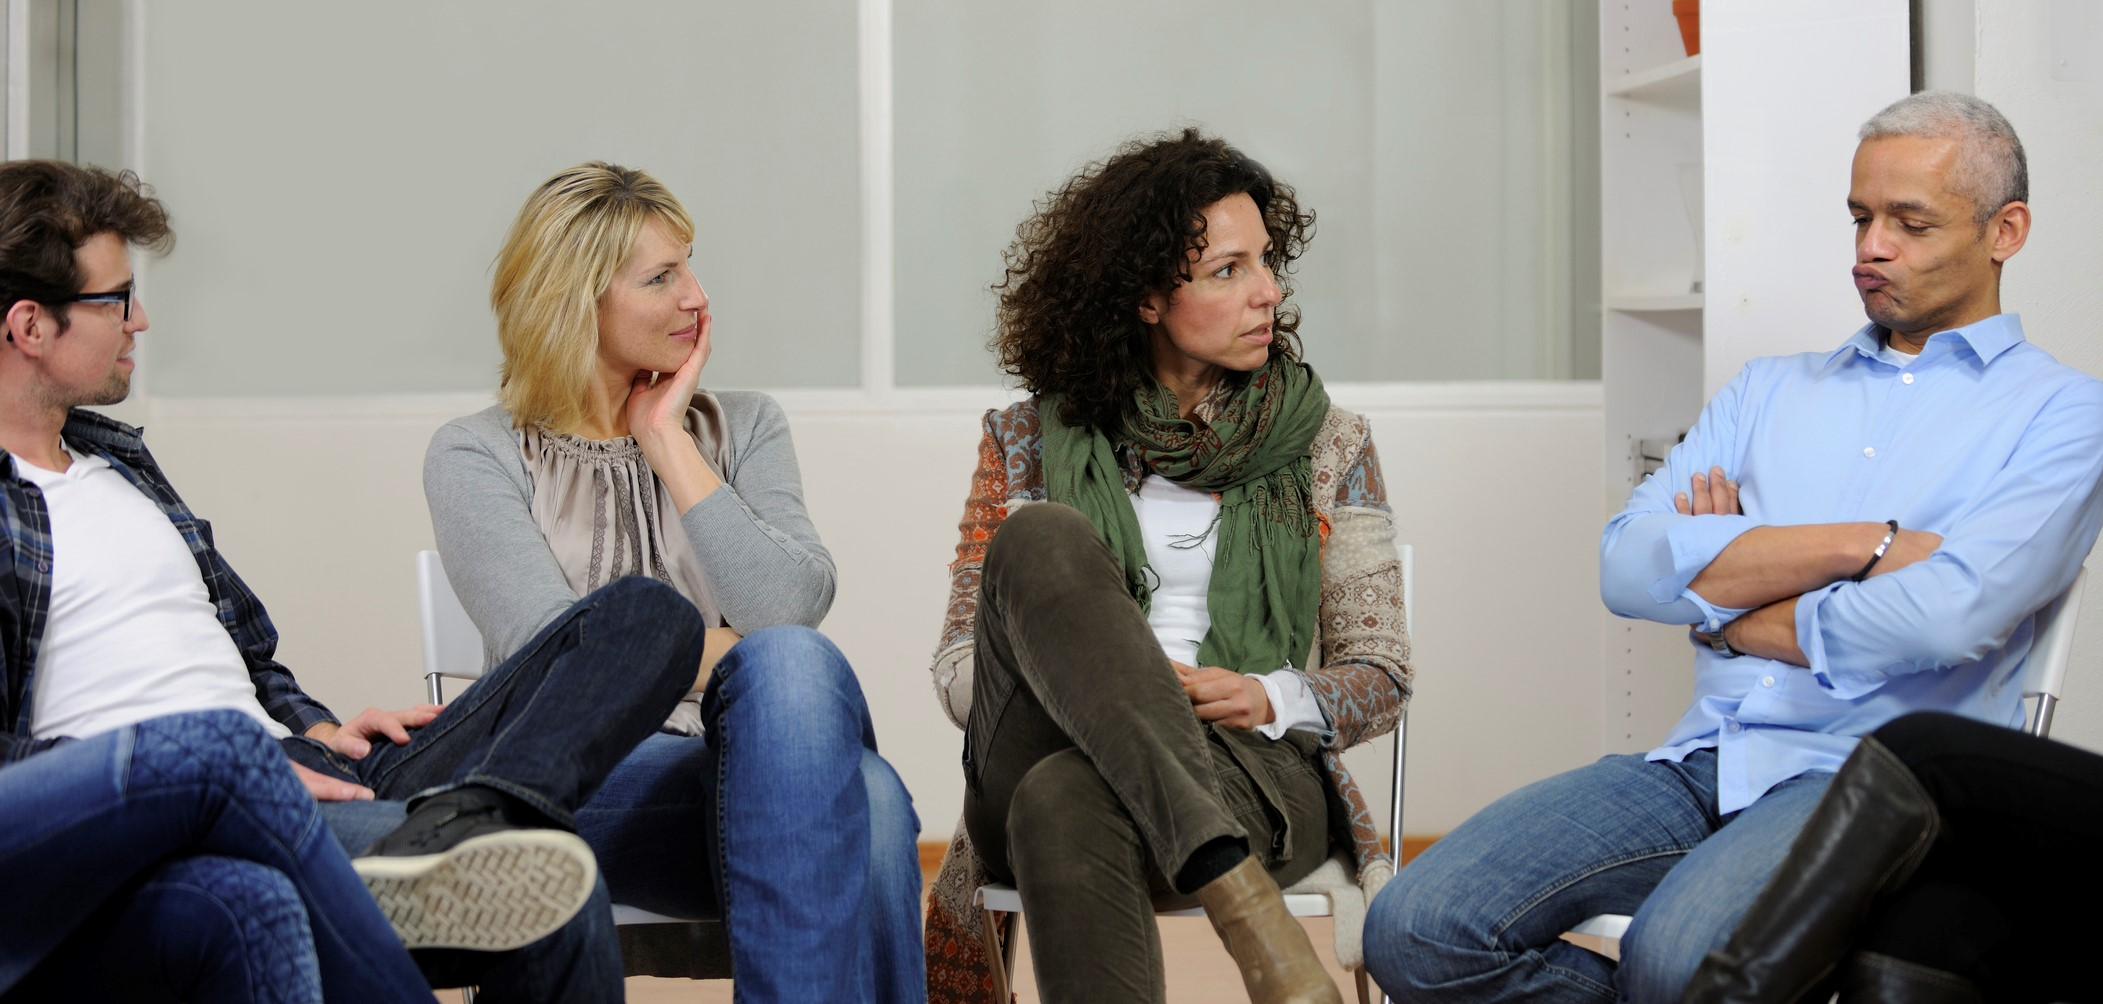 New - Group Supervision